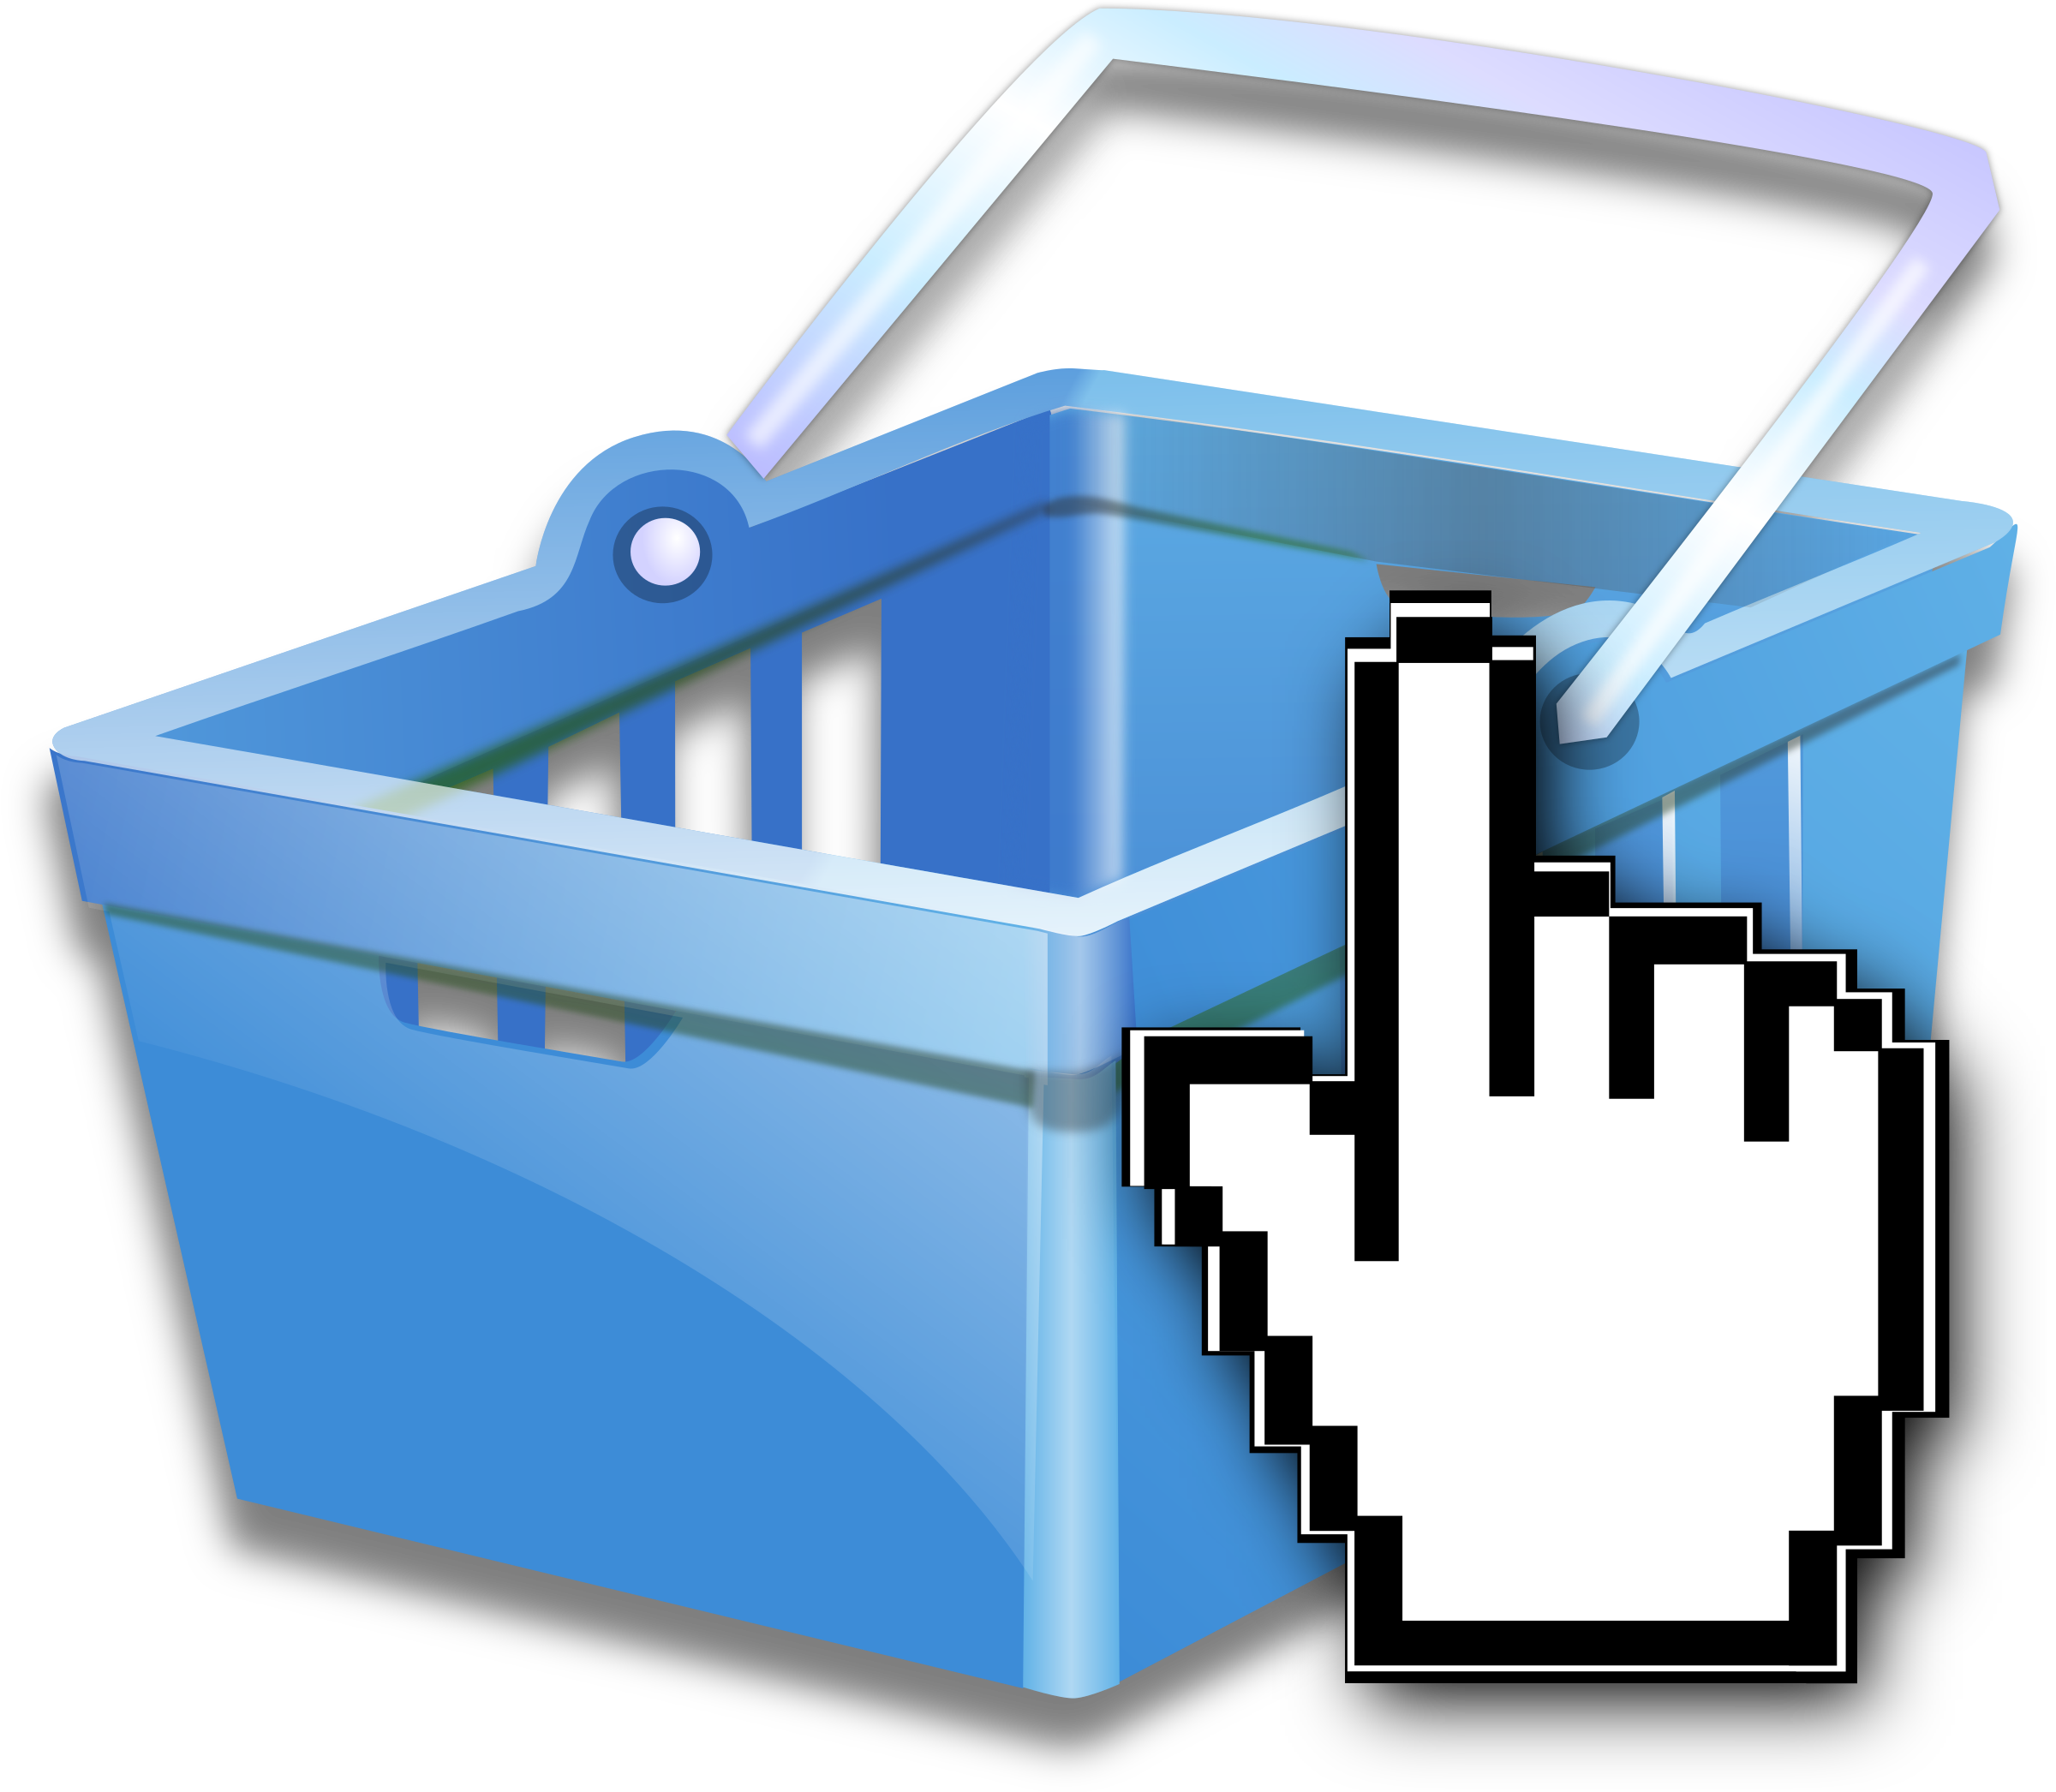 Commerce group shopping basket. Words clipart business